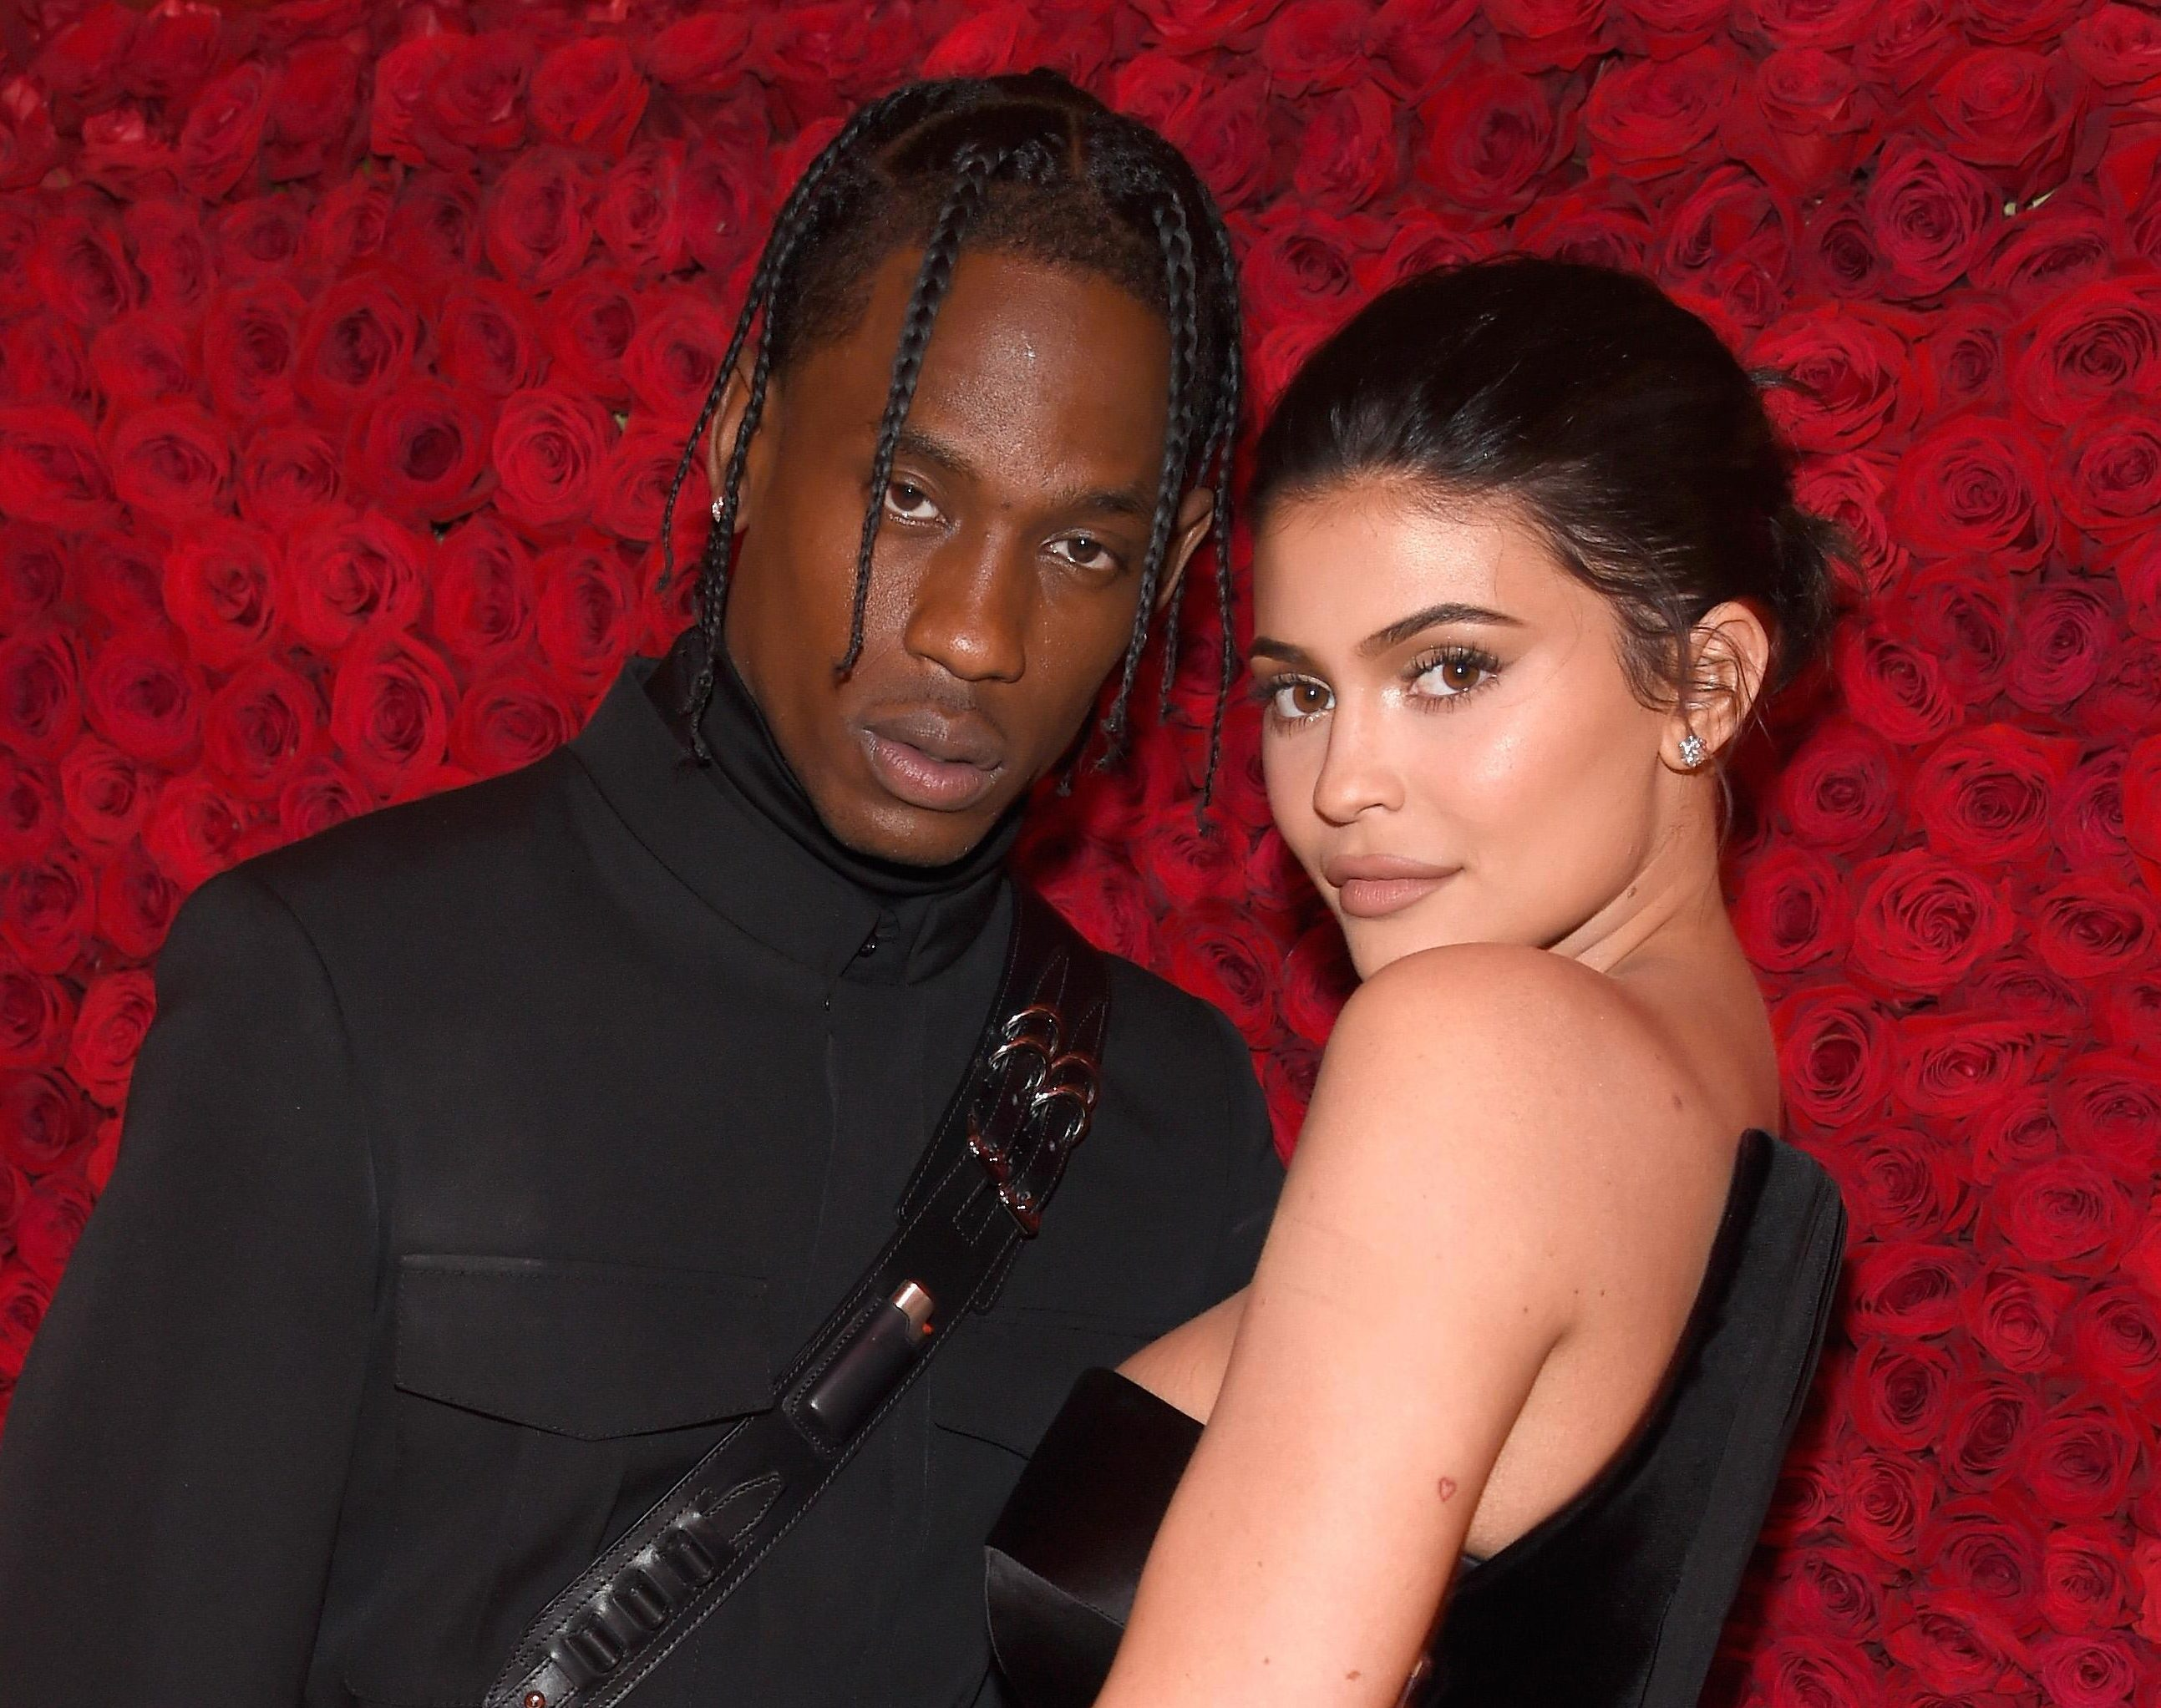 Are Kylie Jenner and Travis Scott engaged? Everything you need to know about the couple's relationship